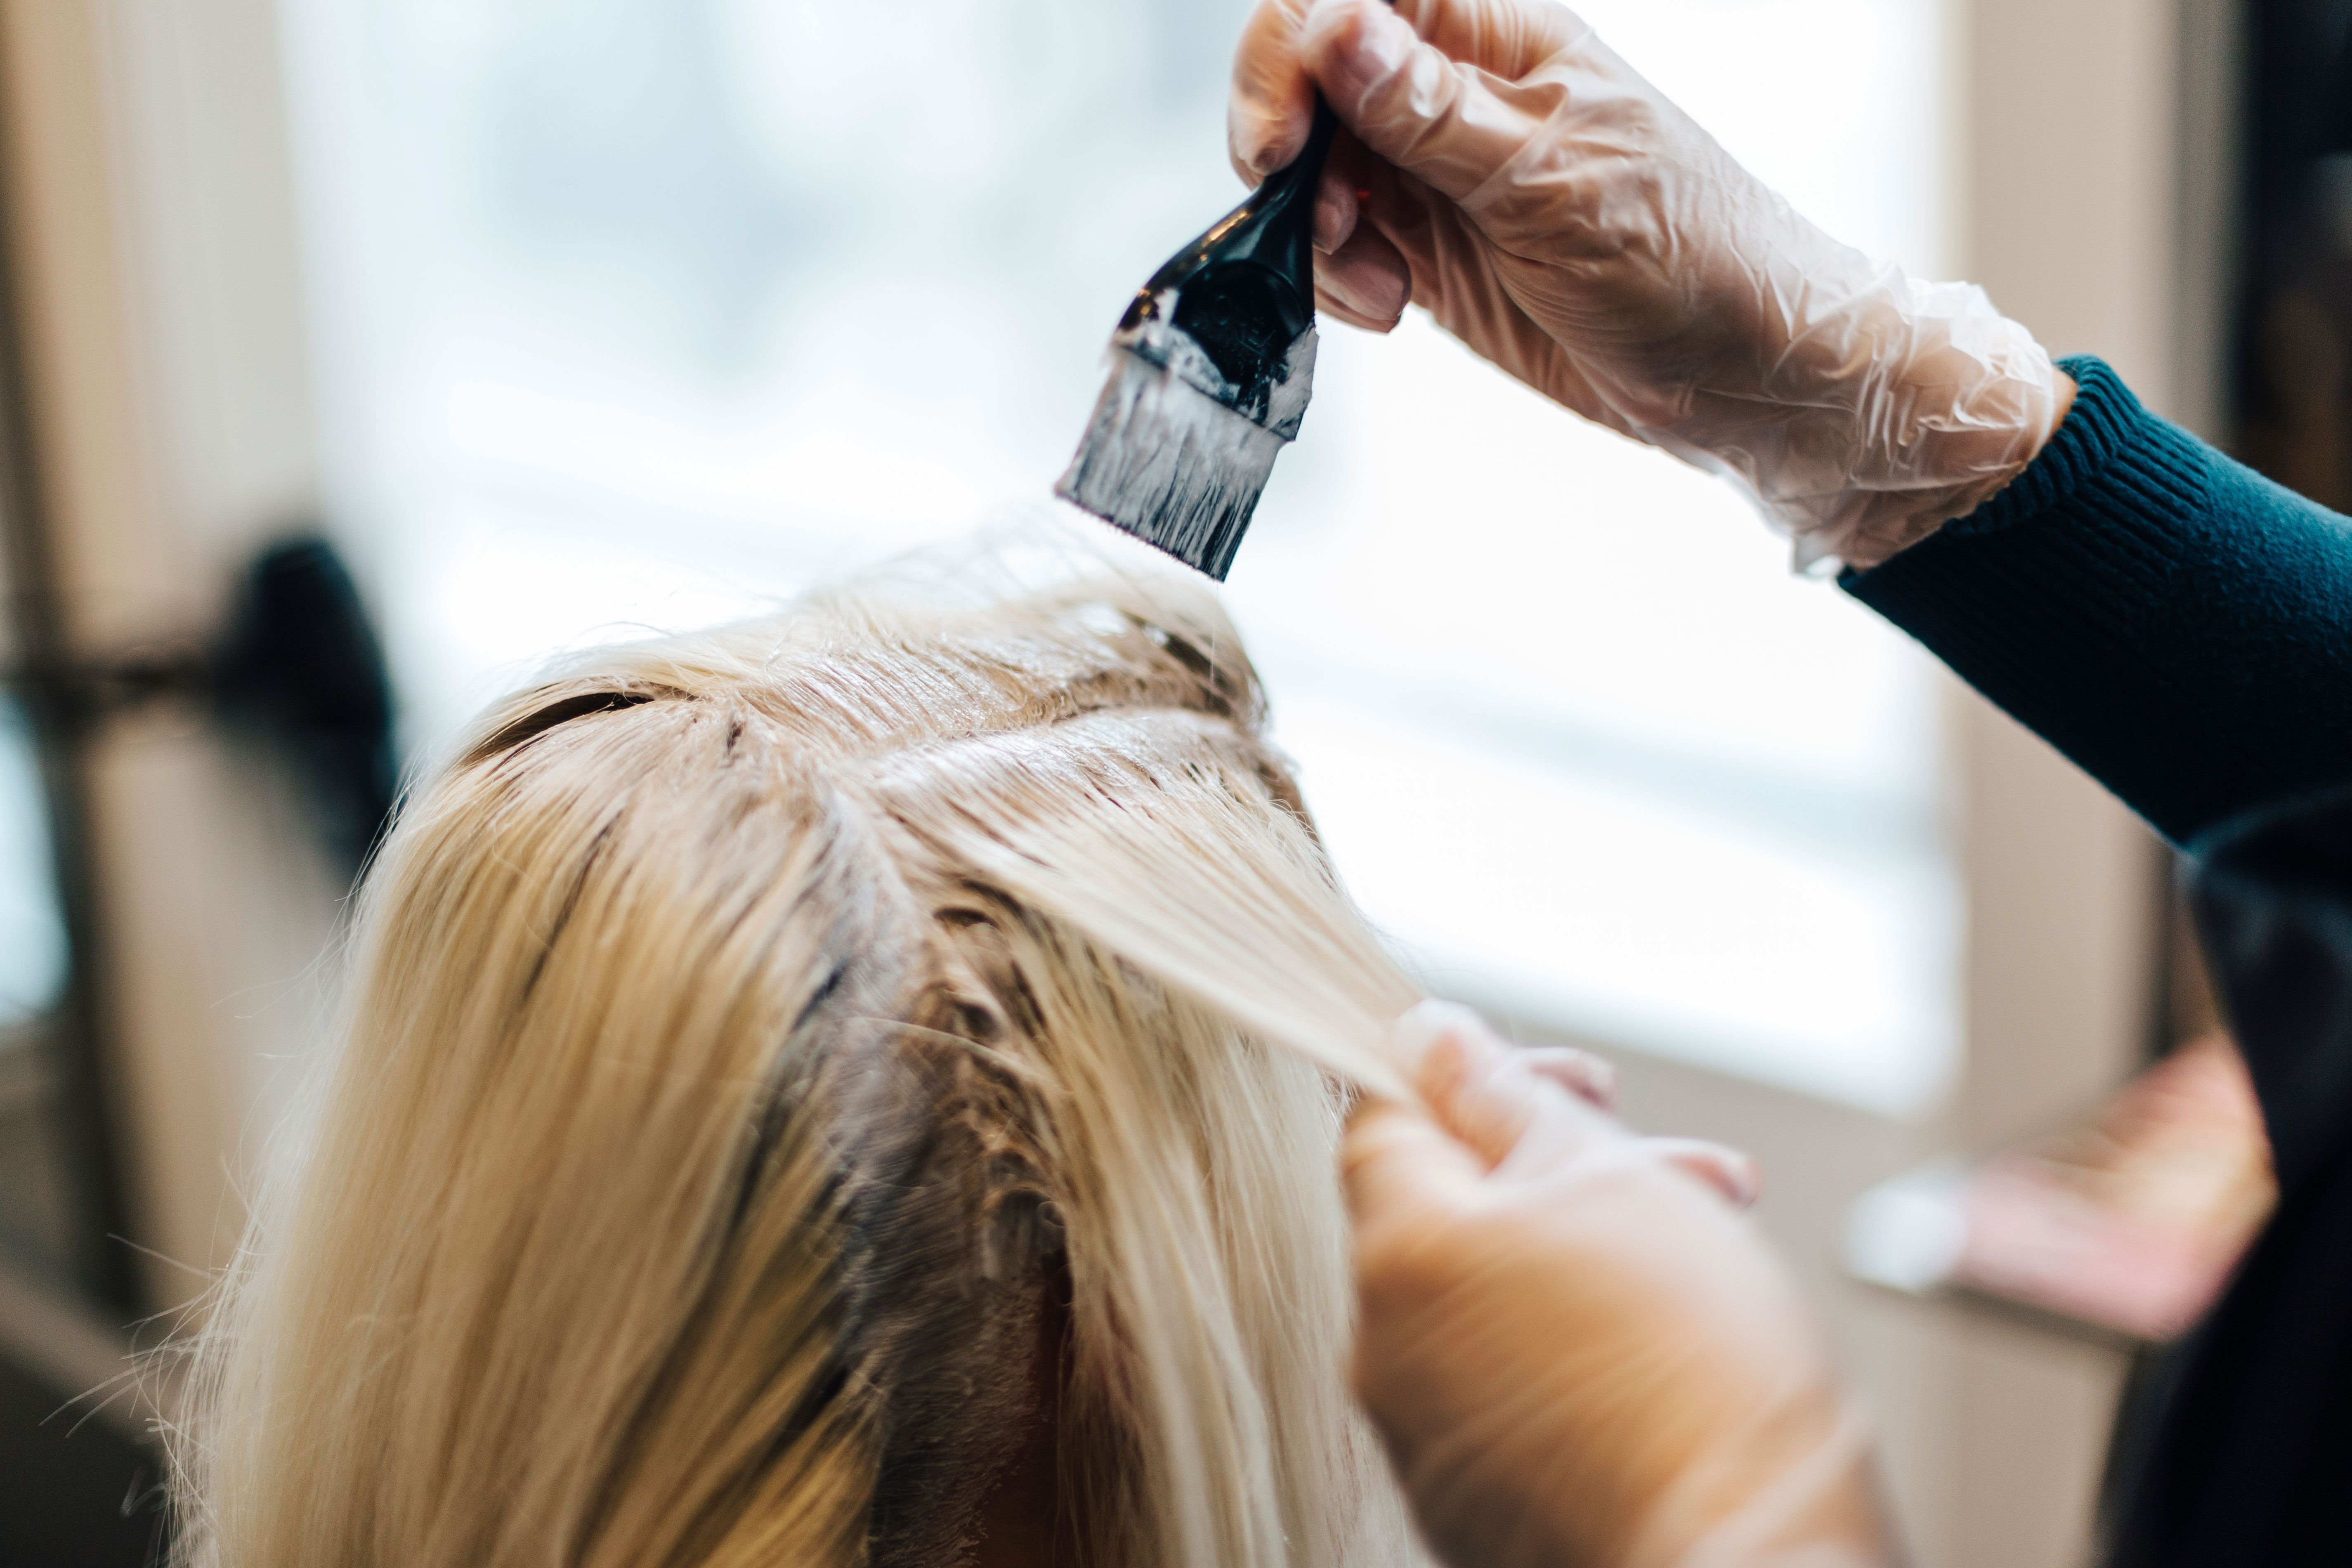 How To Bleach Hair At Home Hairstylist Tips For Dyeing Your Own Roots